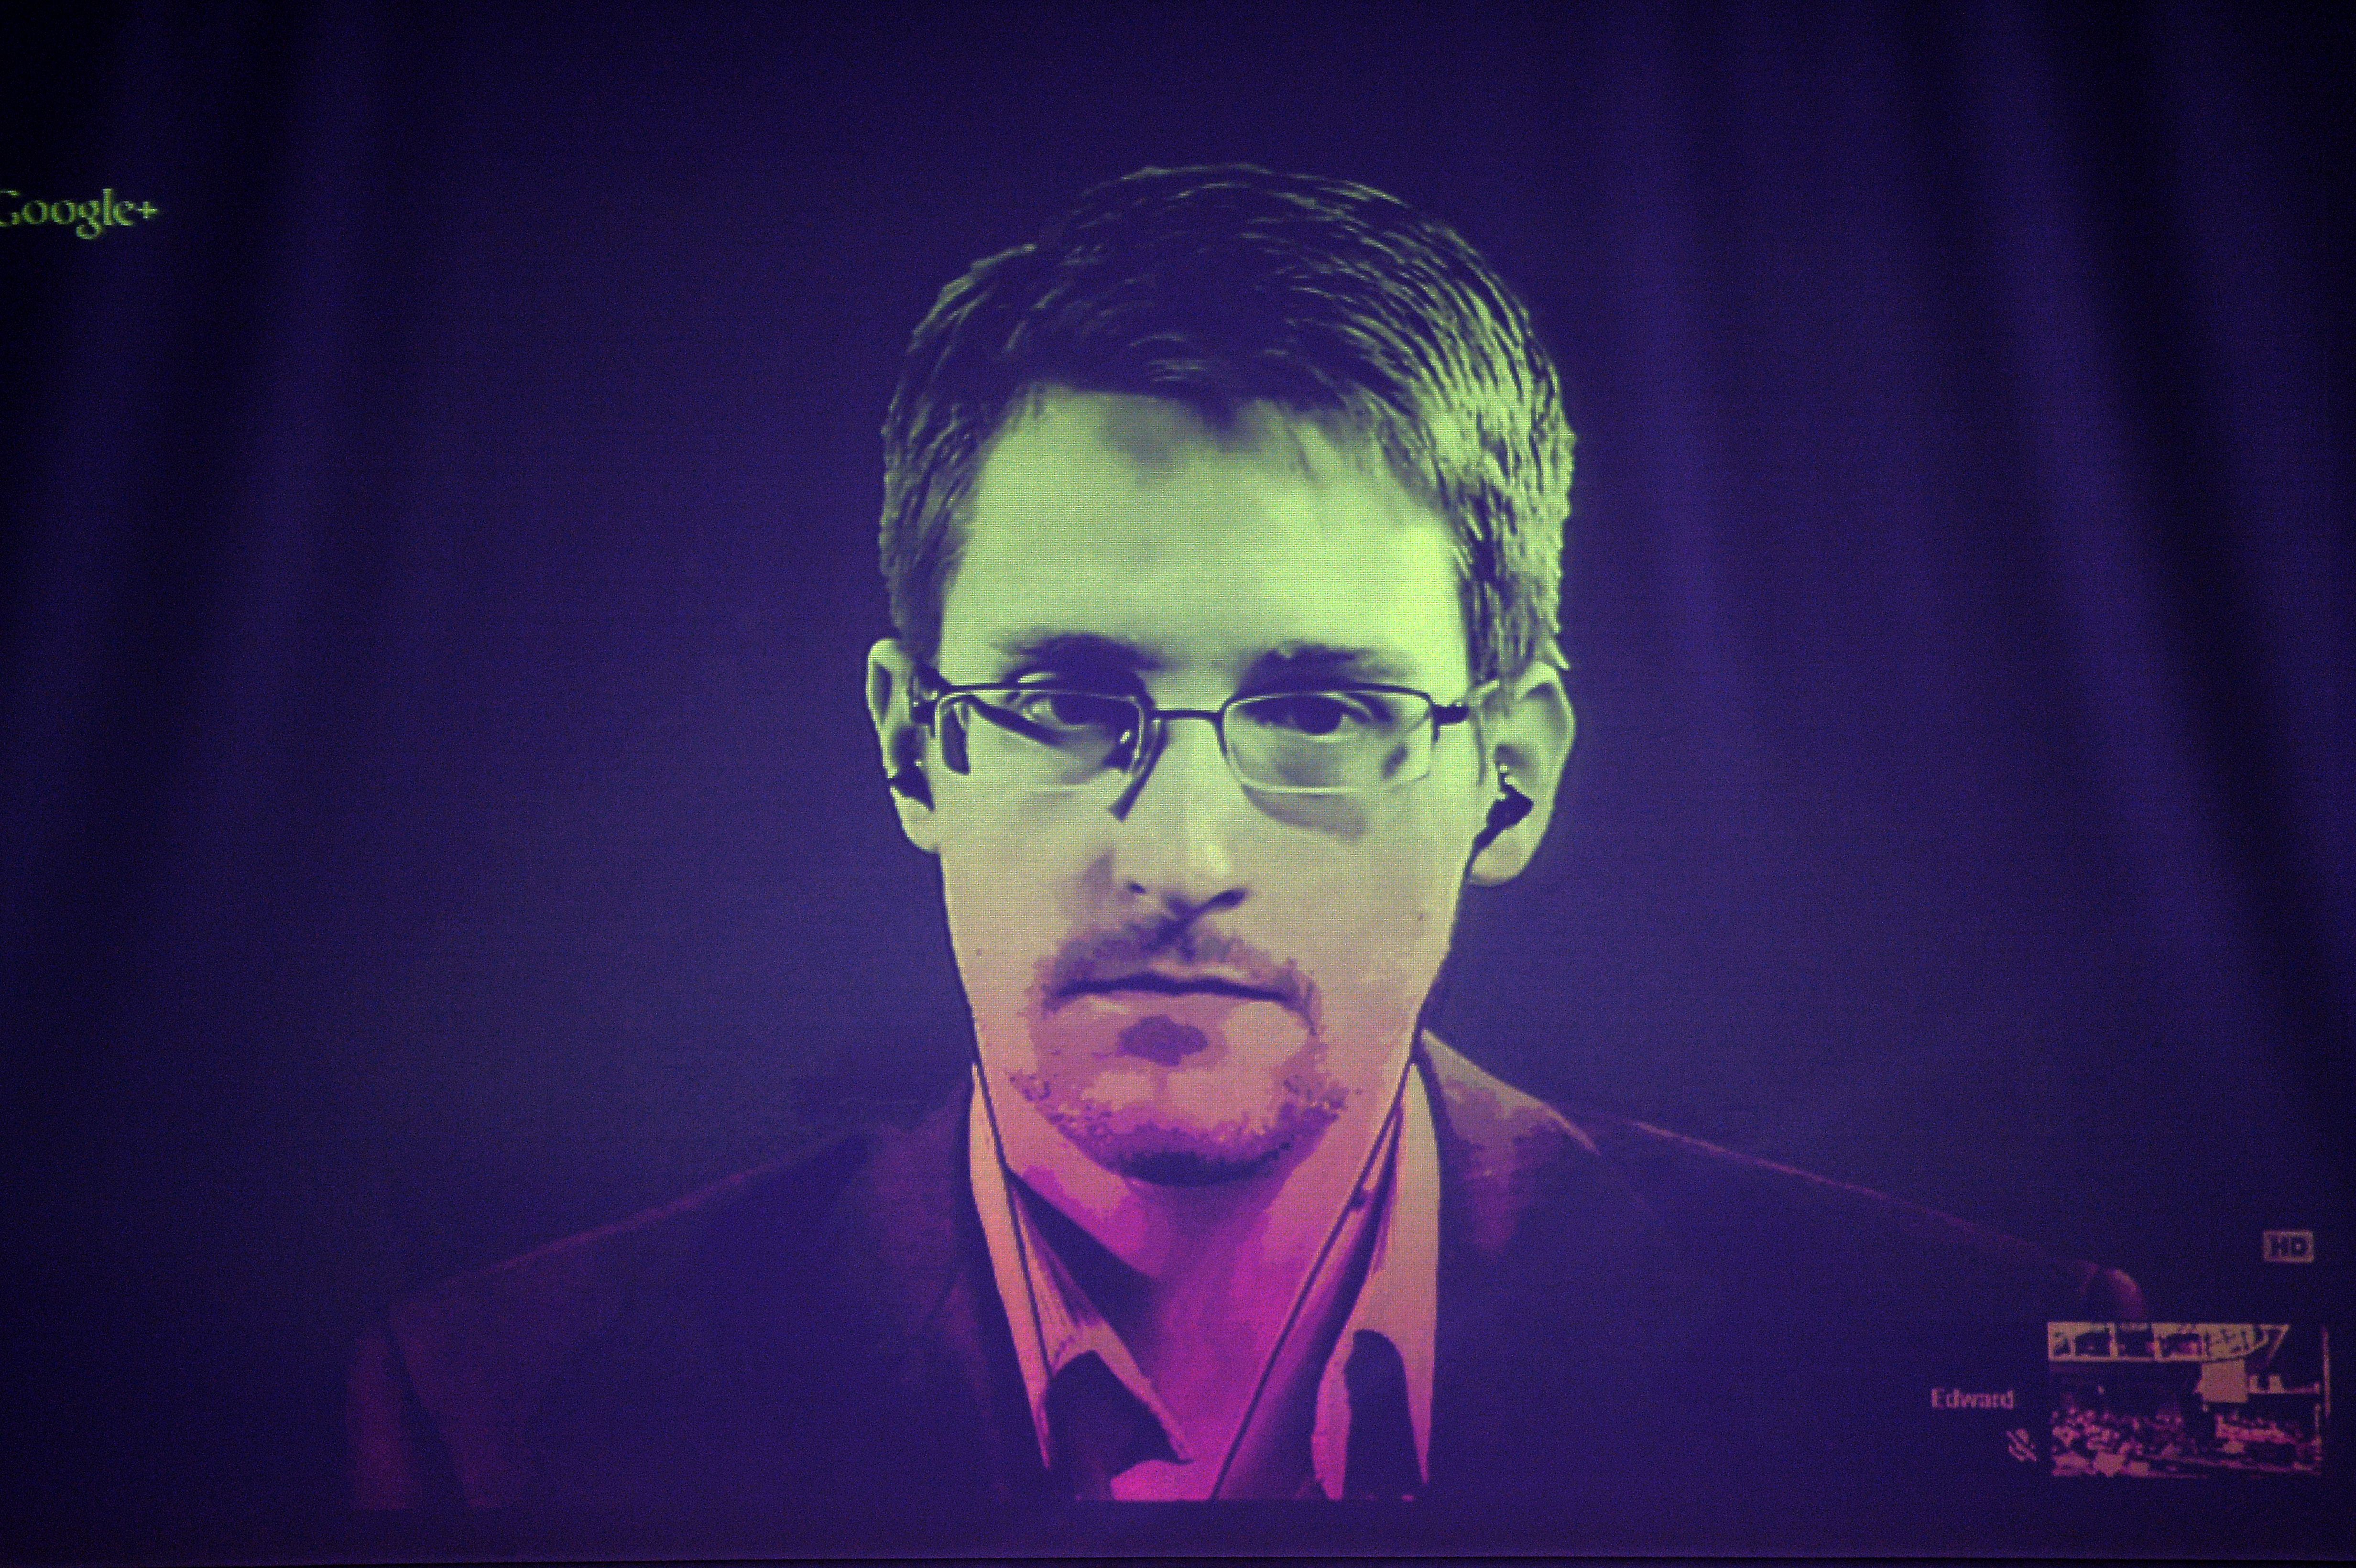 US National Security Agency (NSA) whistleblower Edward Snowden speaks to European officials via videoconference during a parliamentary hearing on improving the protection of whistleblowers, at the Council of Europe in Strasbourg, eastern France, on June 24, 2014.